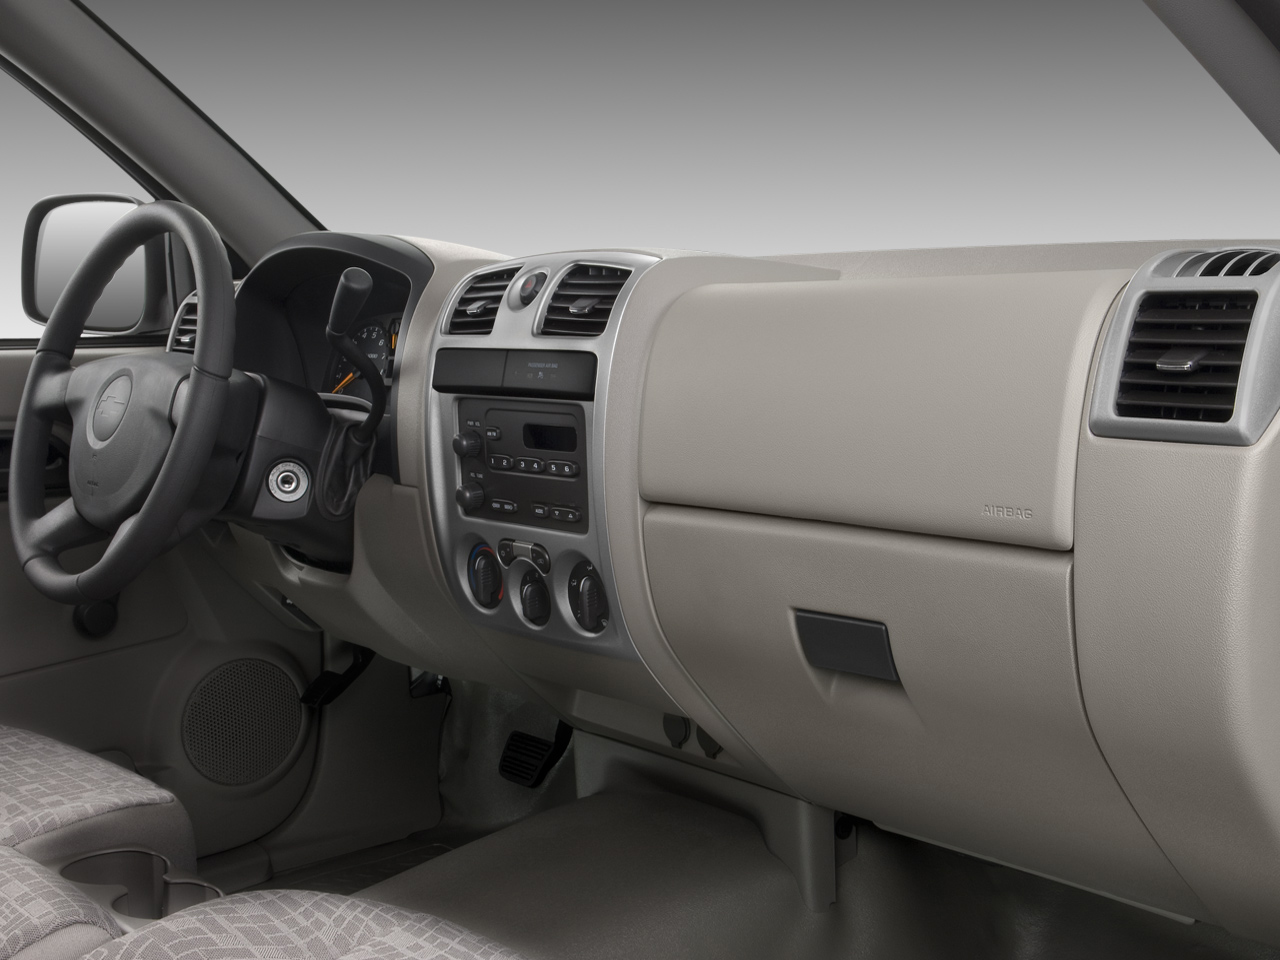 2009 Chevy Colorado And 2009 Gmc Canyon First Drive Midsize Pickup Review Automobile Magazine